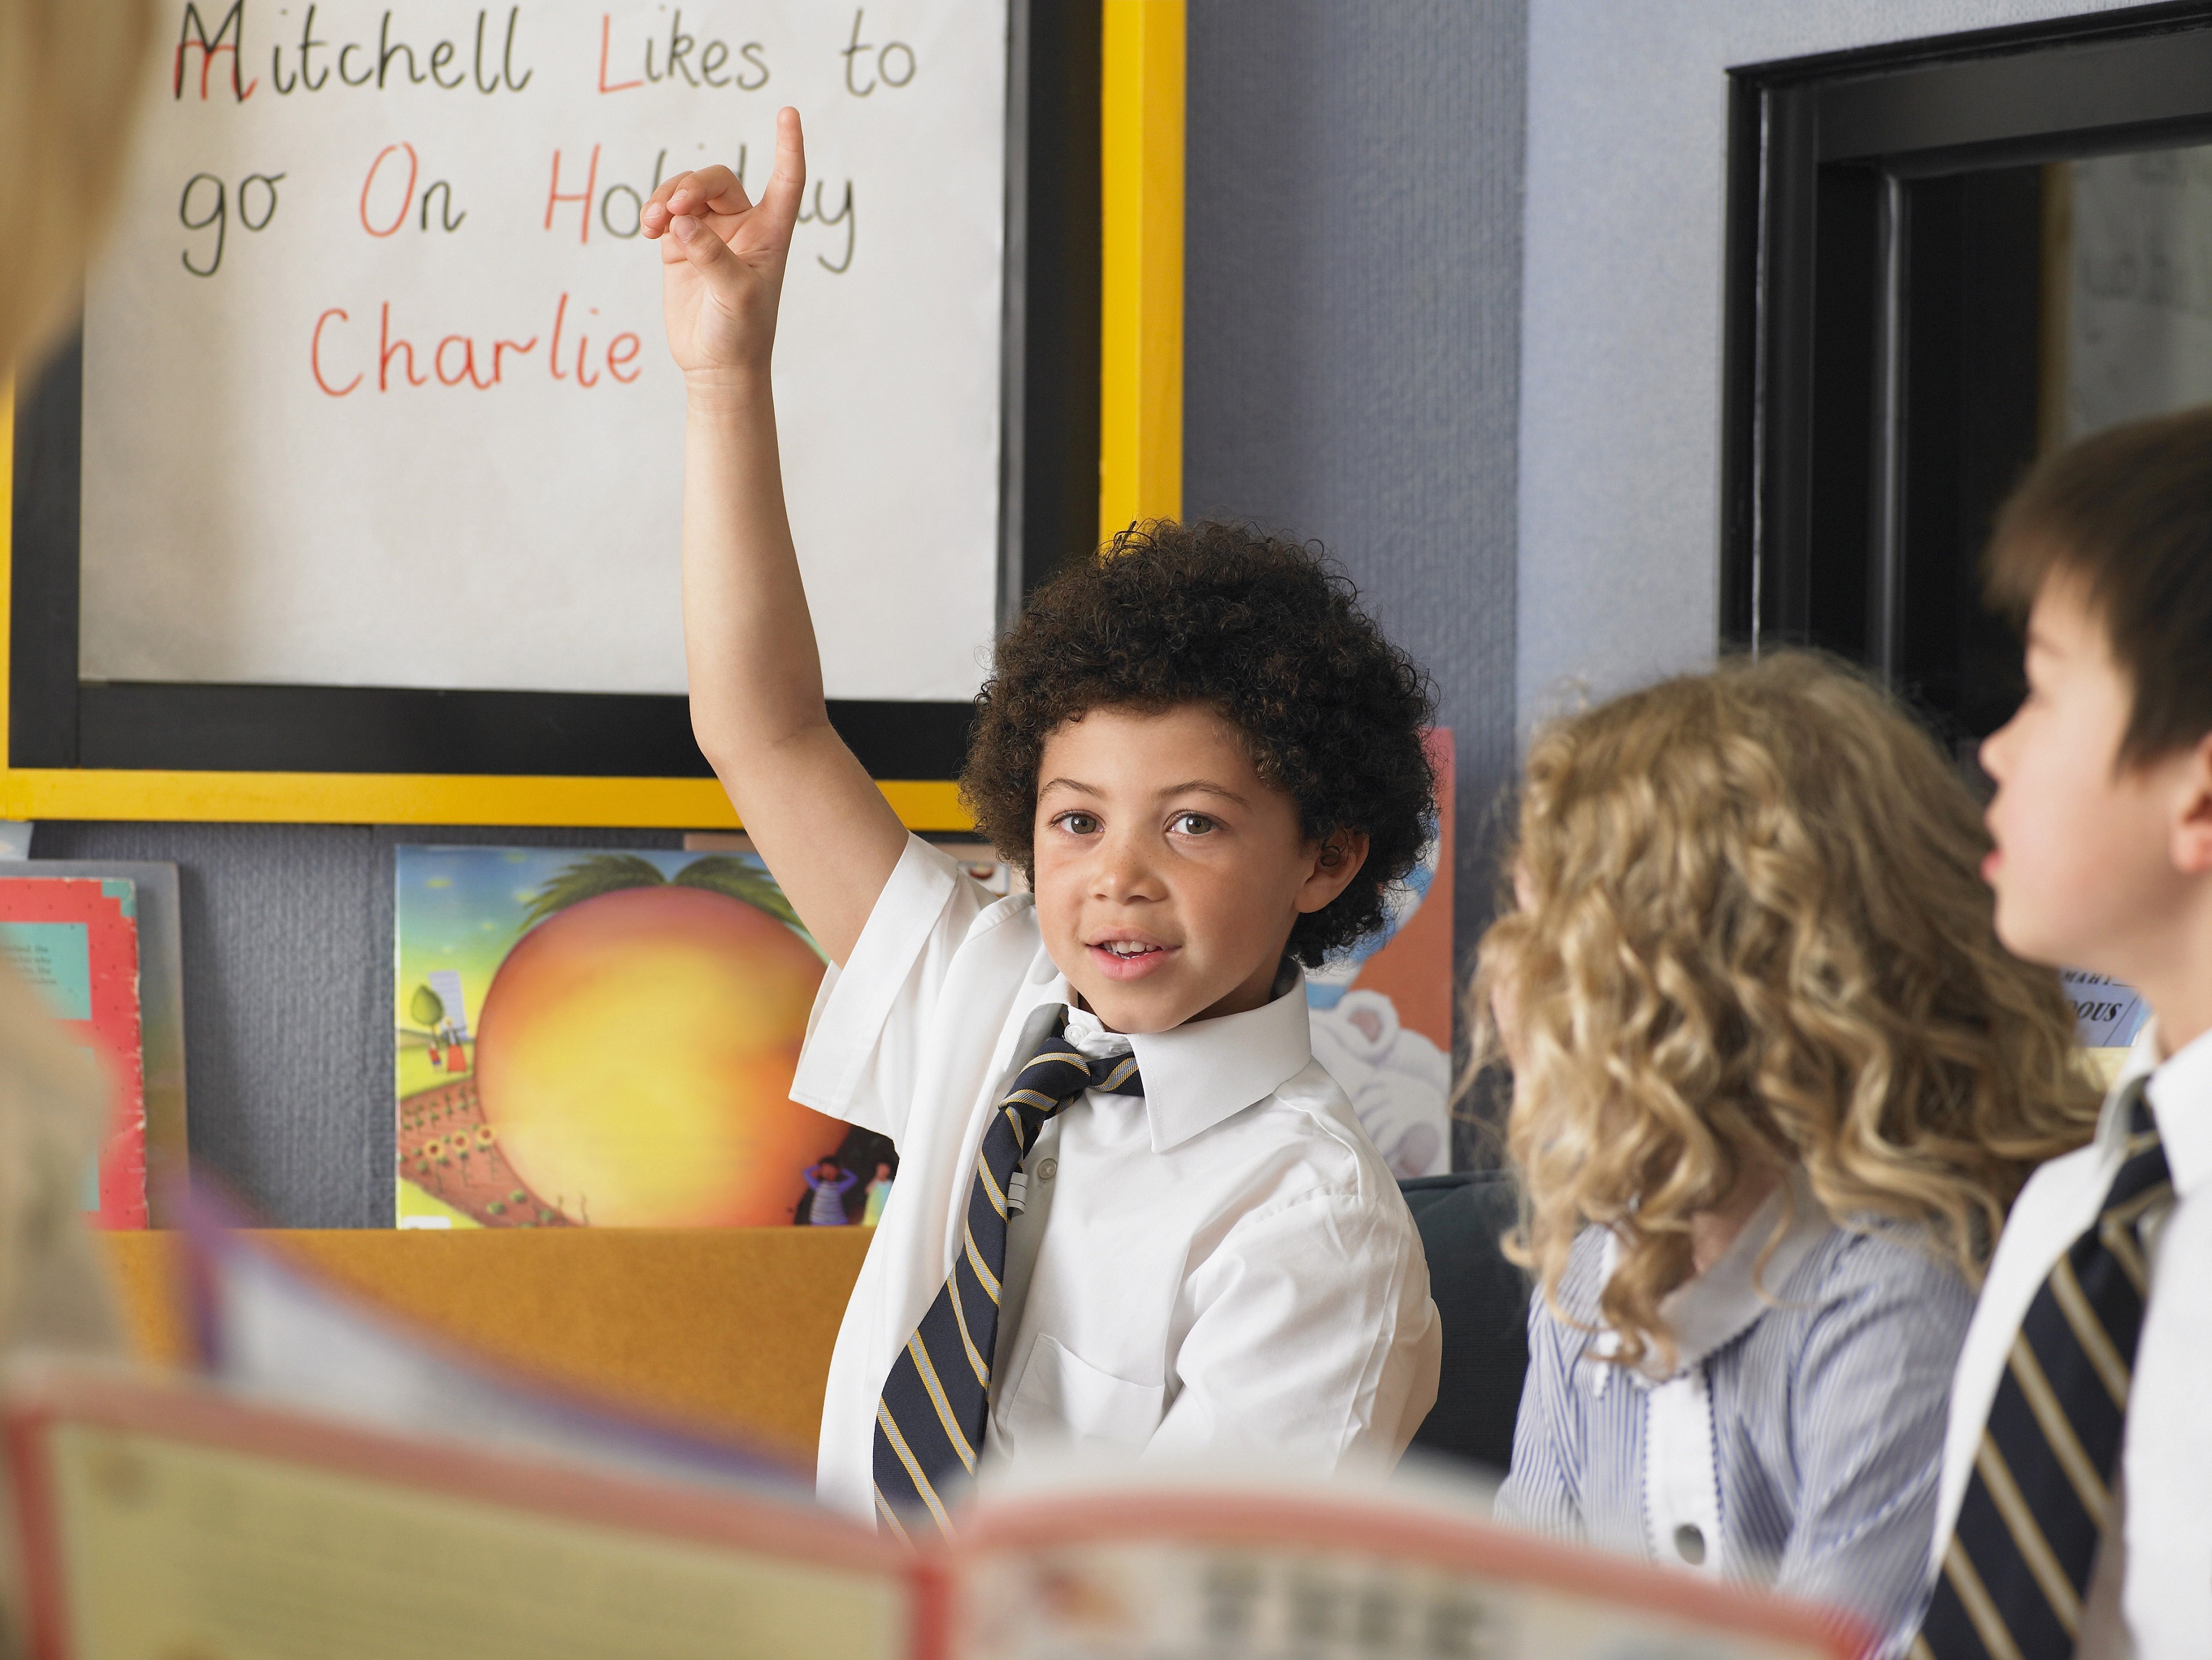 A child at a private religious school raising his hand in class.